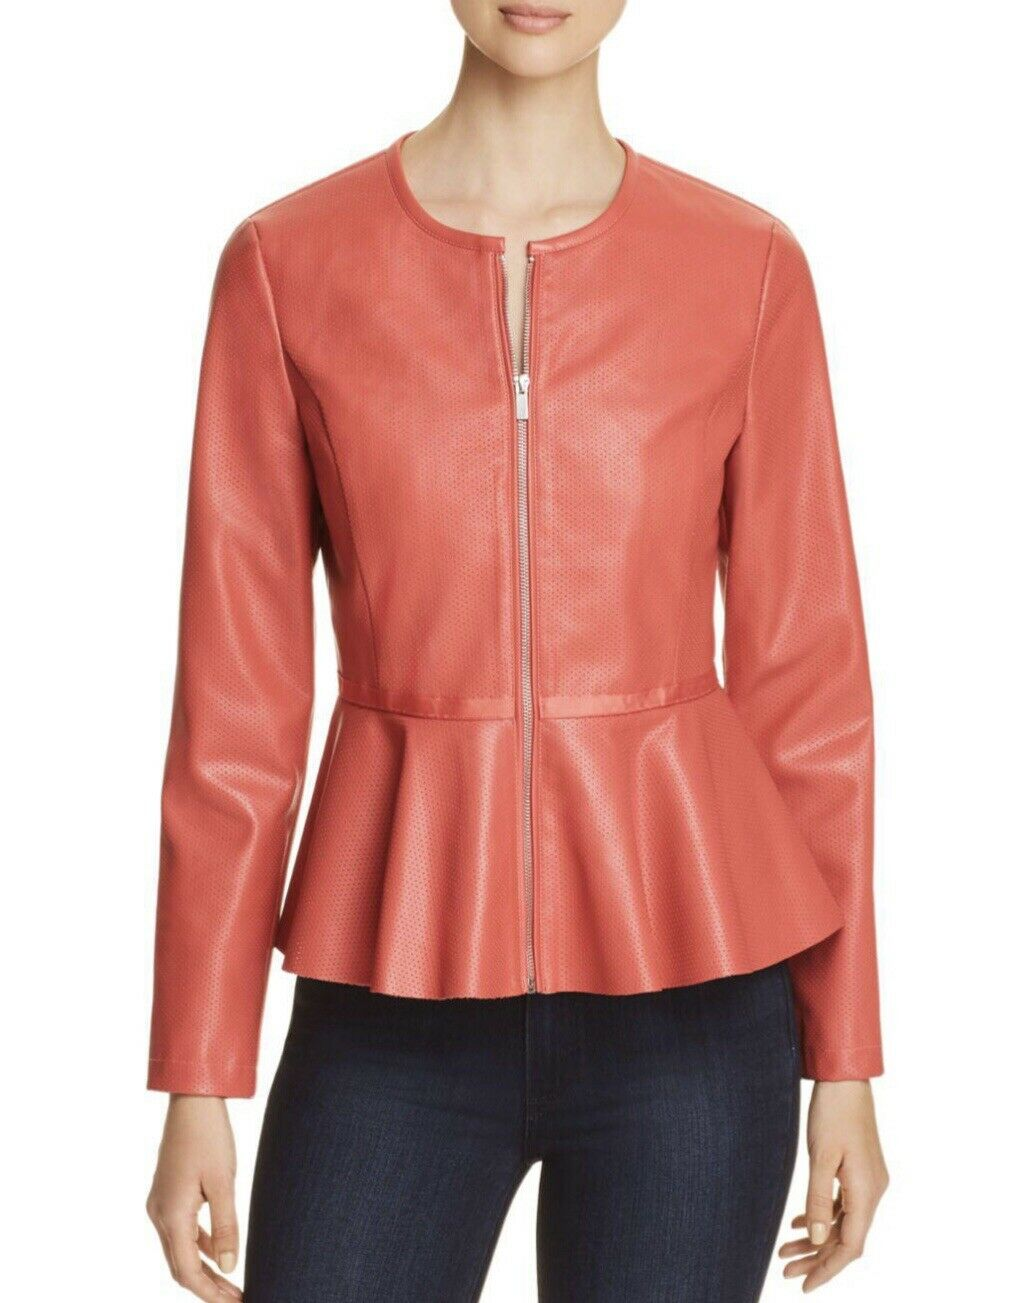 New Bagatelle Faux Leather Coral Peplum Jacket SIZE S NWT RETAIL